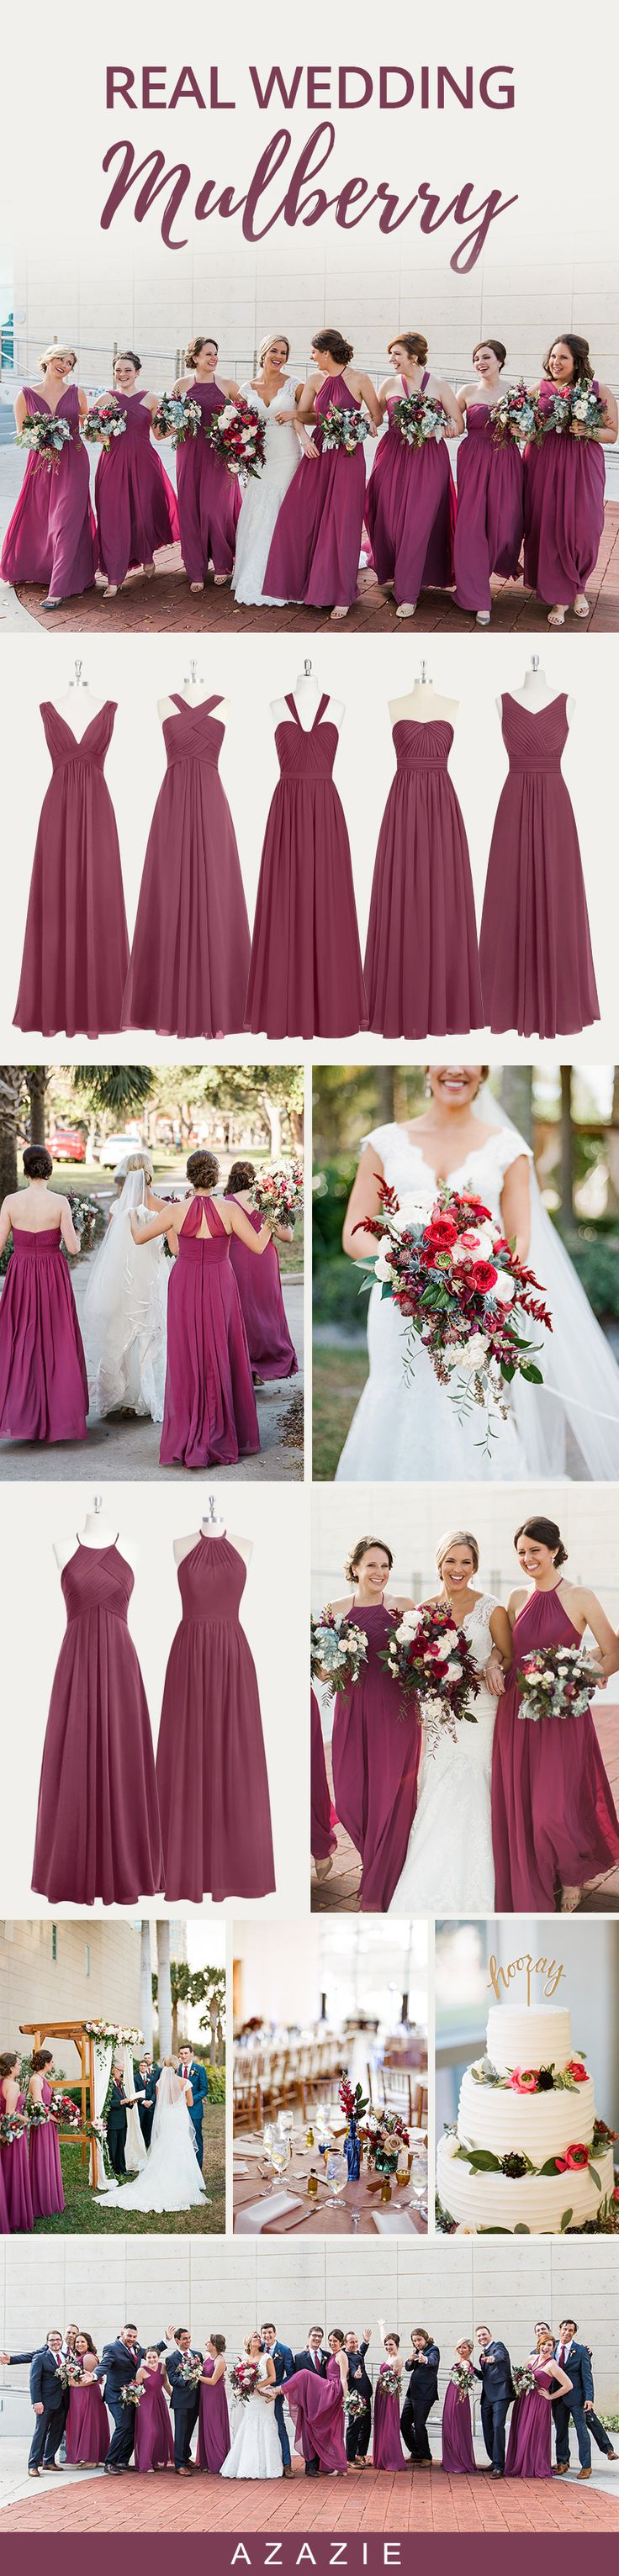 This gorgeous Mulberry shade is perfect for any bridal party! Check it out in over 100 styles at Azazie. Wedding tip: Order dress samples to try on our styles before you buy!